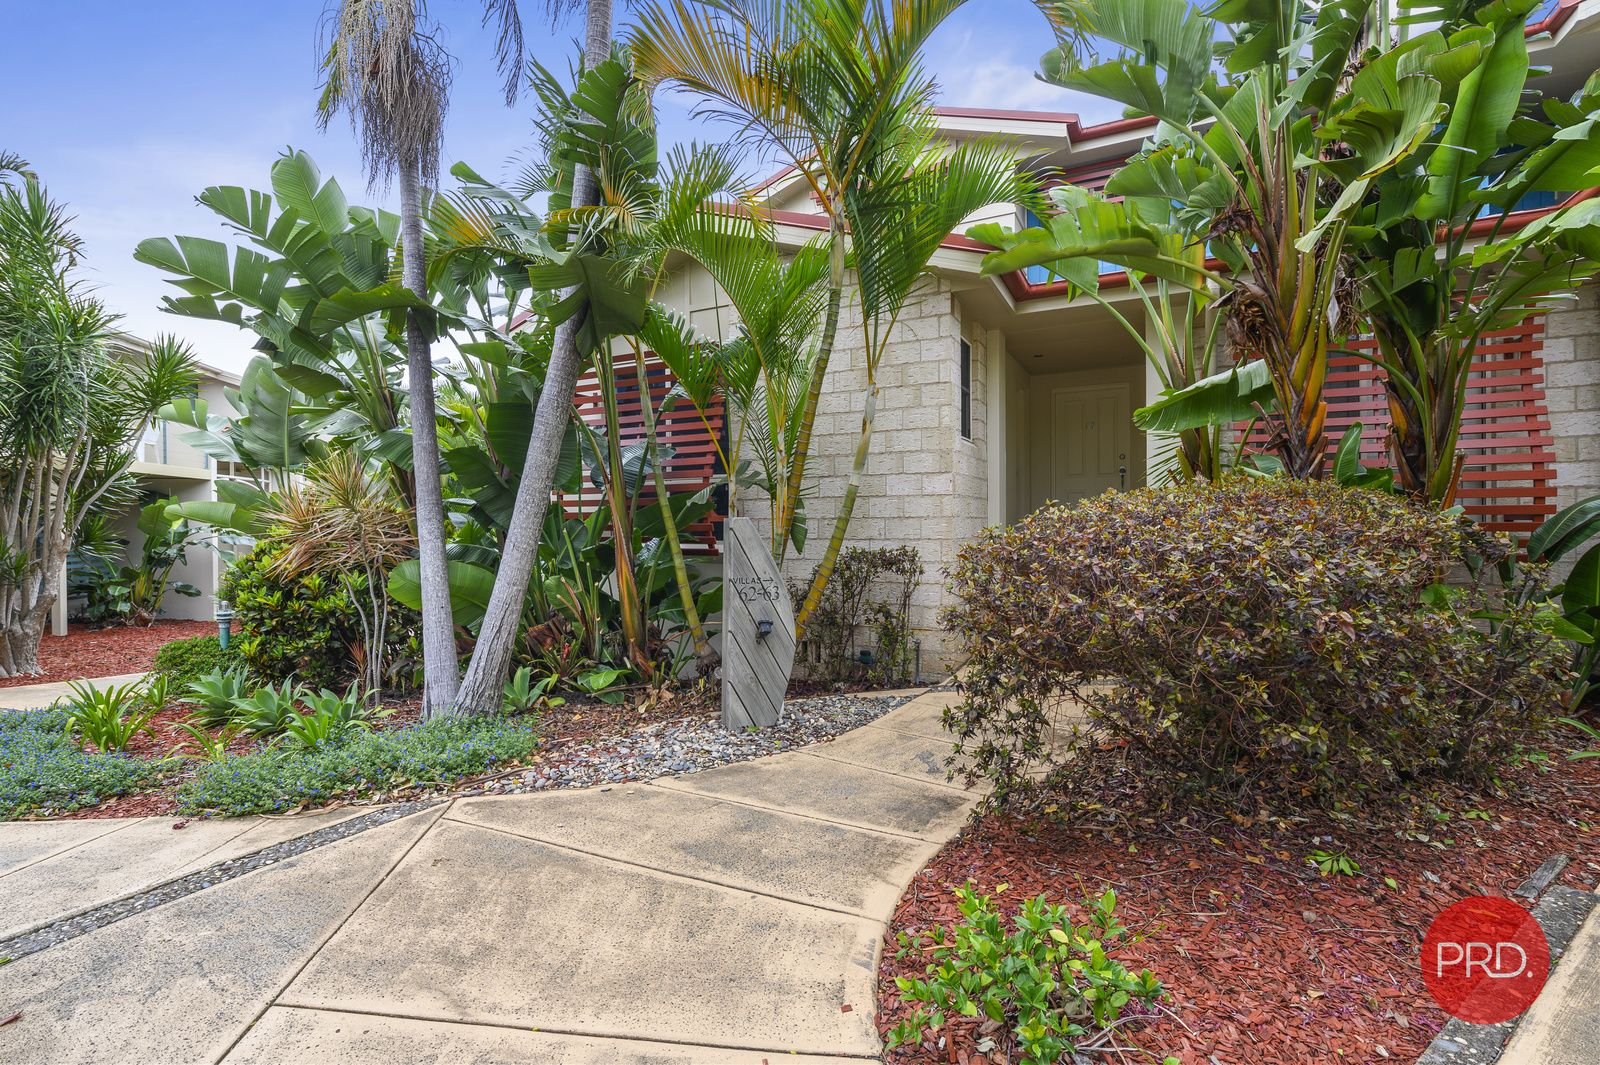 63/94 Solitary Islands Way, Sapphire Beach NSW 2450, Image 1